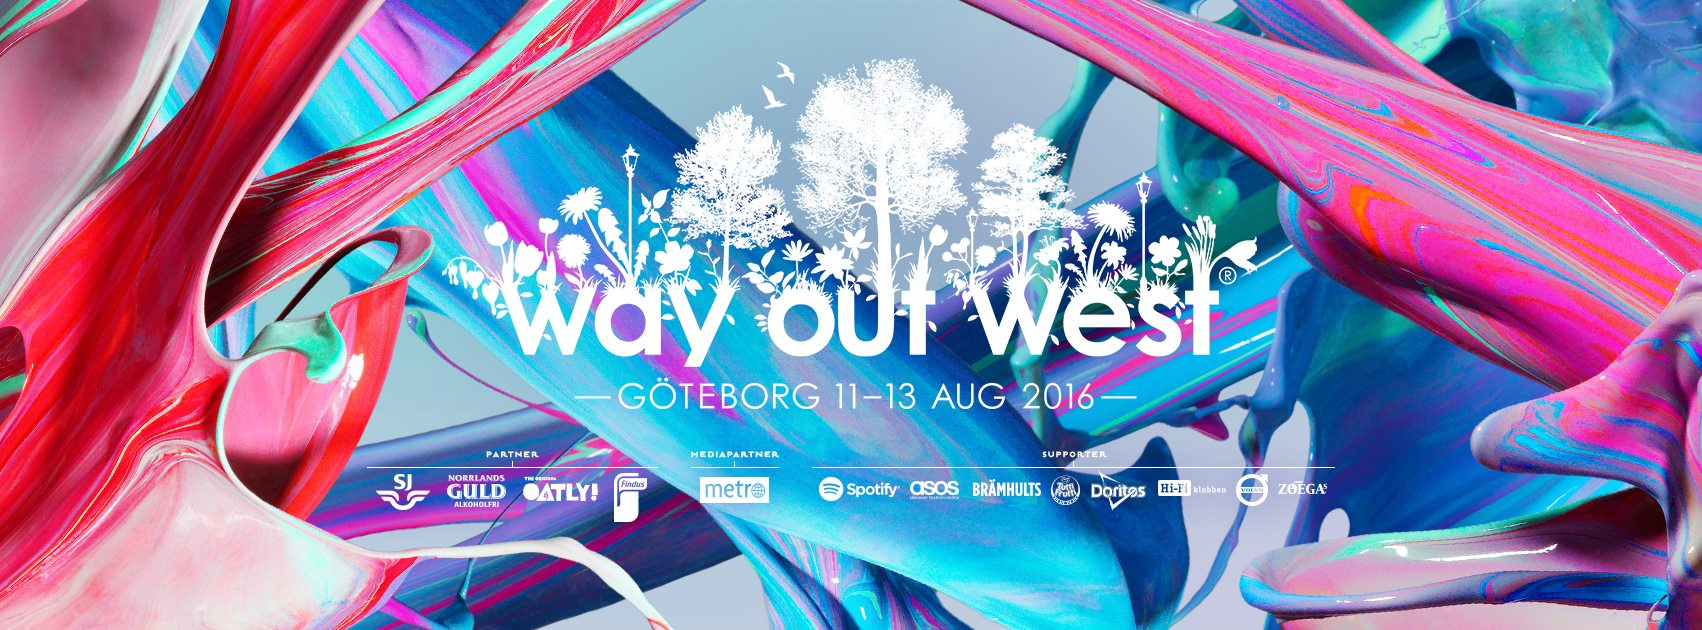 The Way Out West 2016 Line Up Is Hotting Up…